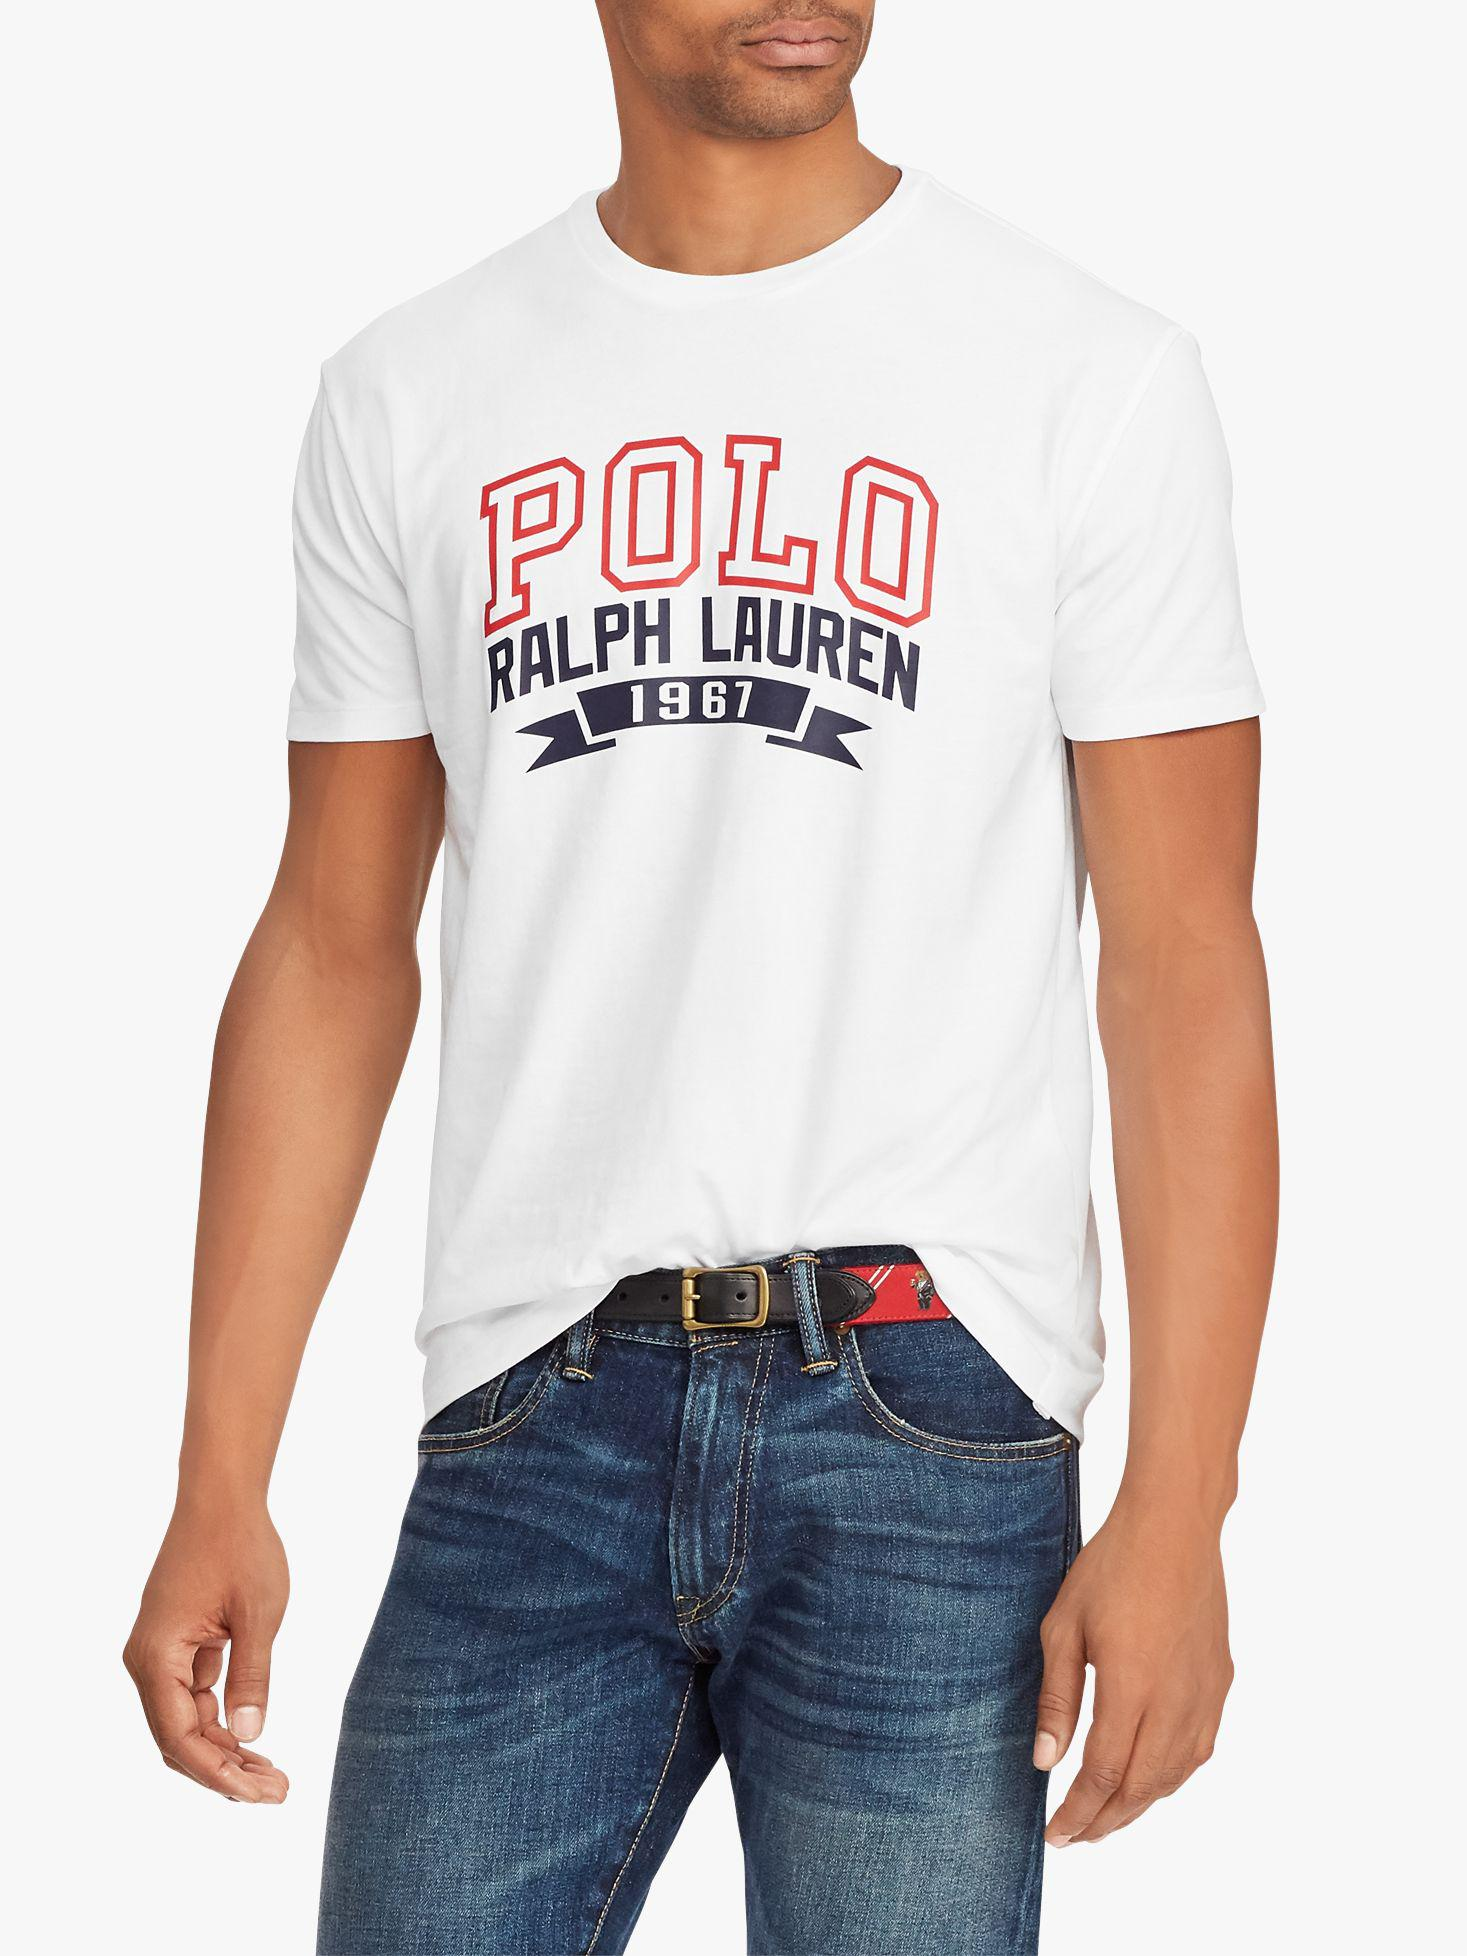 a798956a Ralph Lauren Polo Short Sleeve Graphic T-shirt in White for Men - Lyst